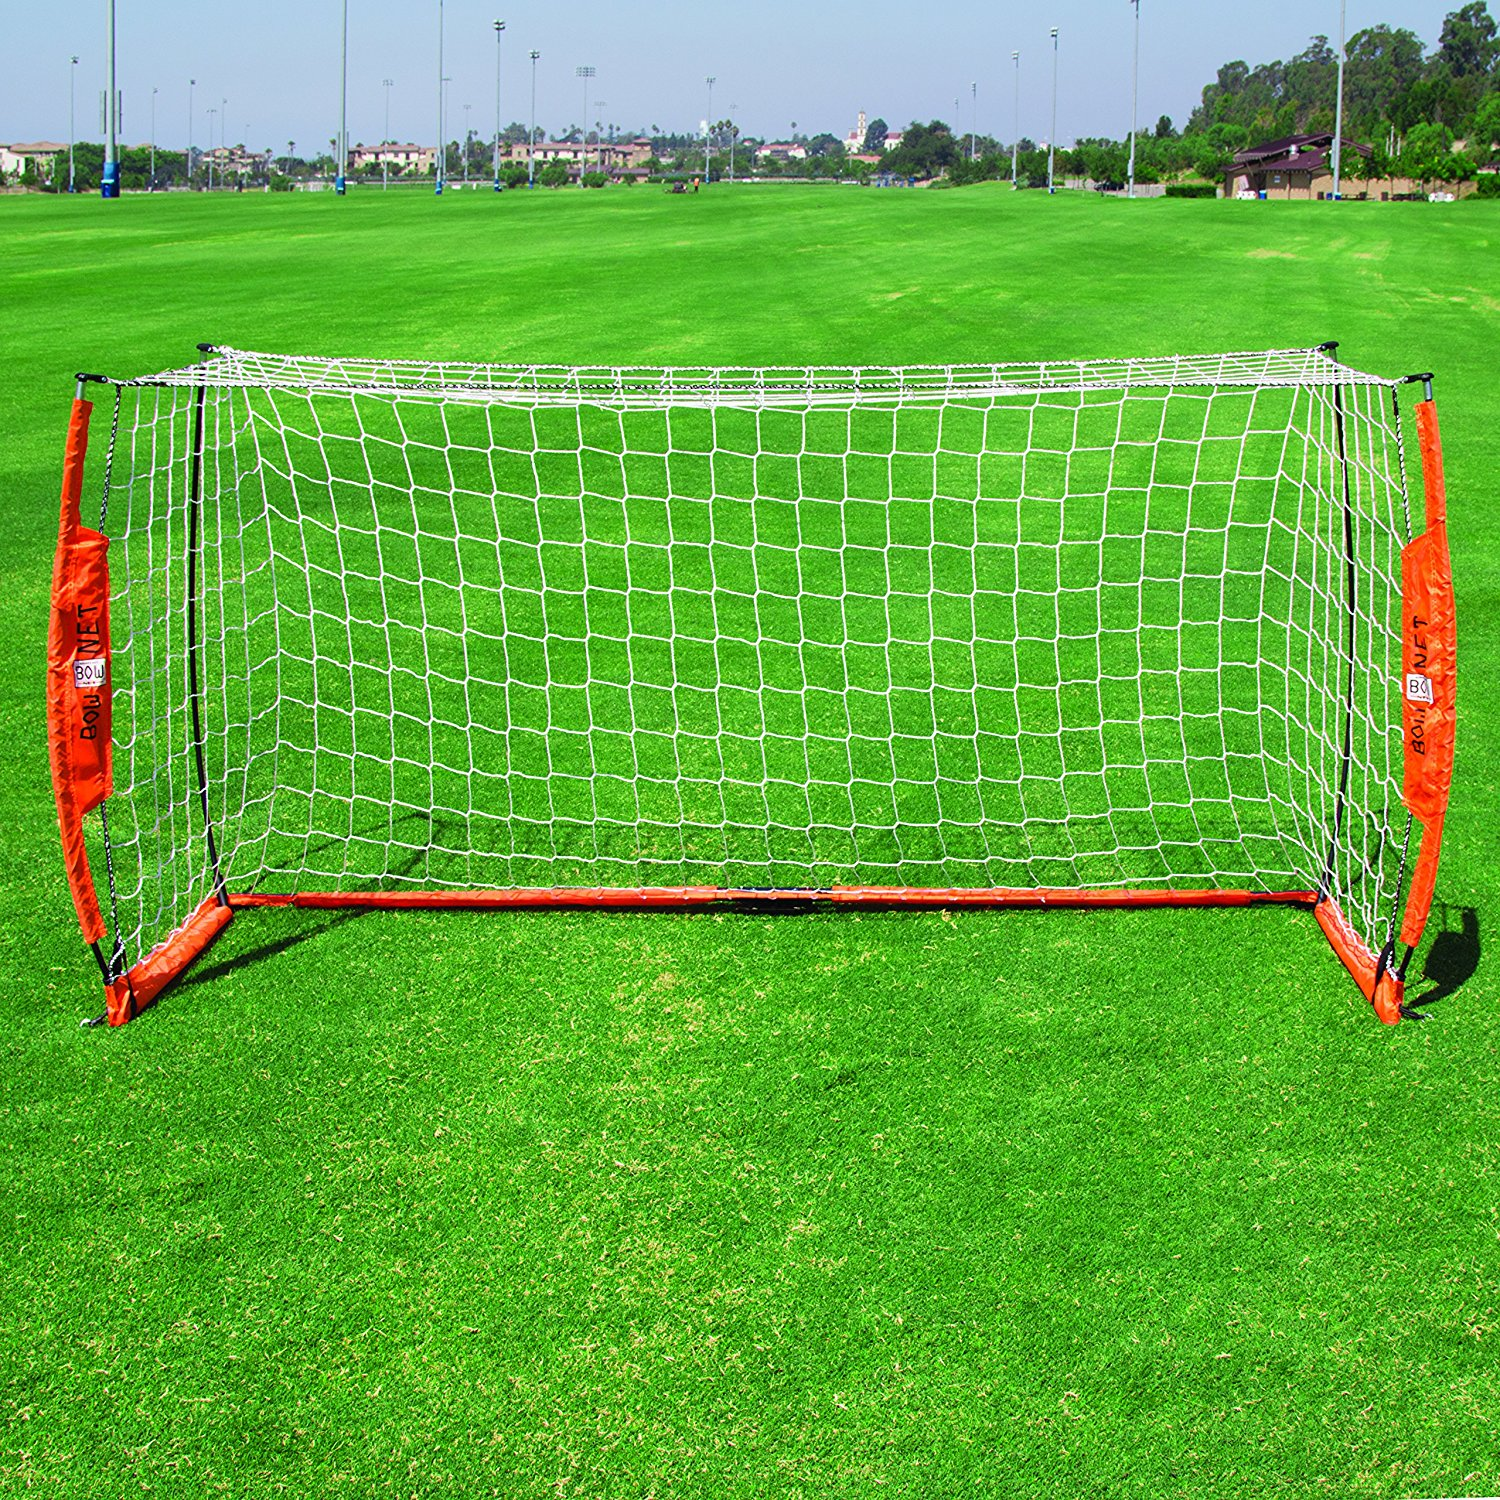 Soccer Nets For Backyard | Backyard Ideas